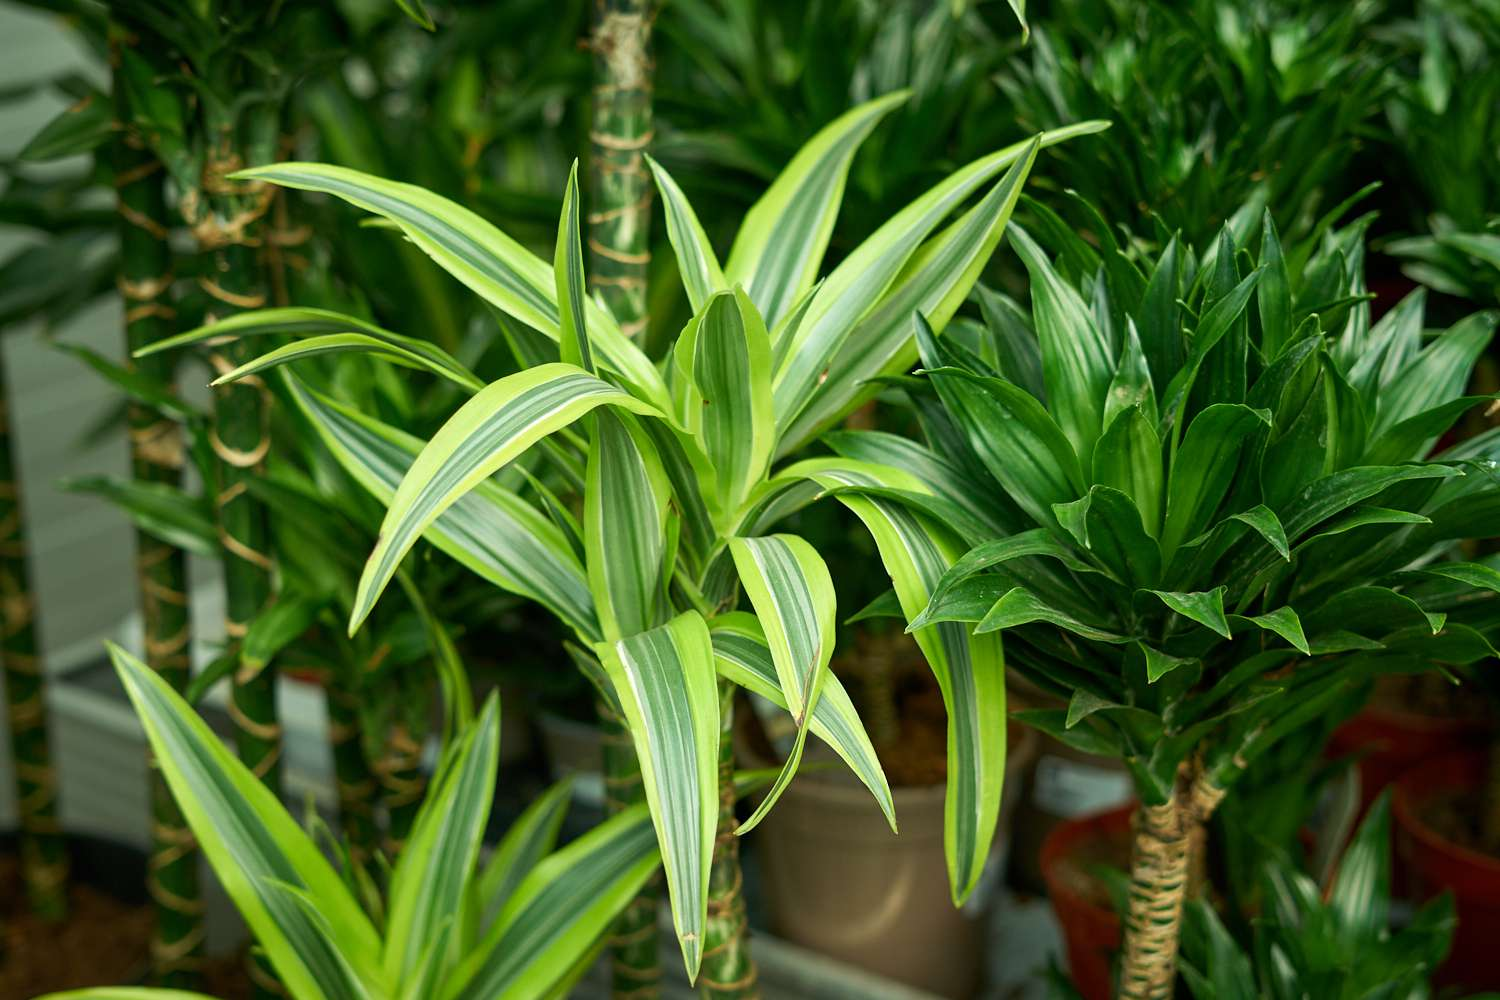 lime green-striped corn plant leaves with thick trunks crowded together outside